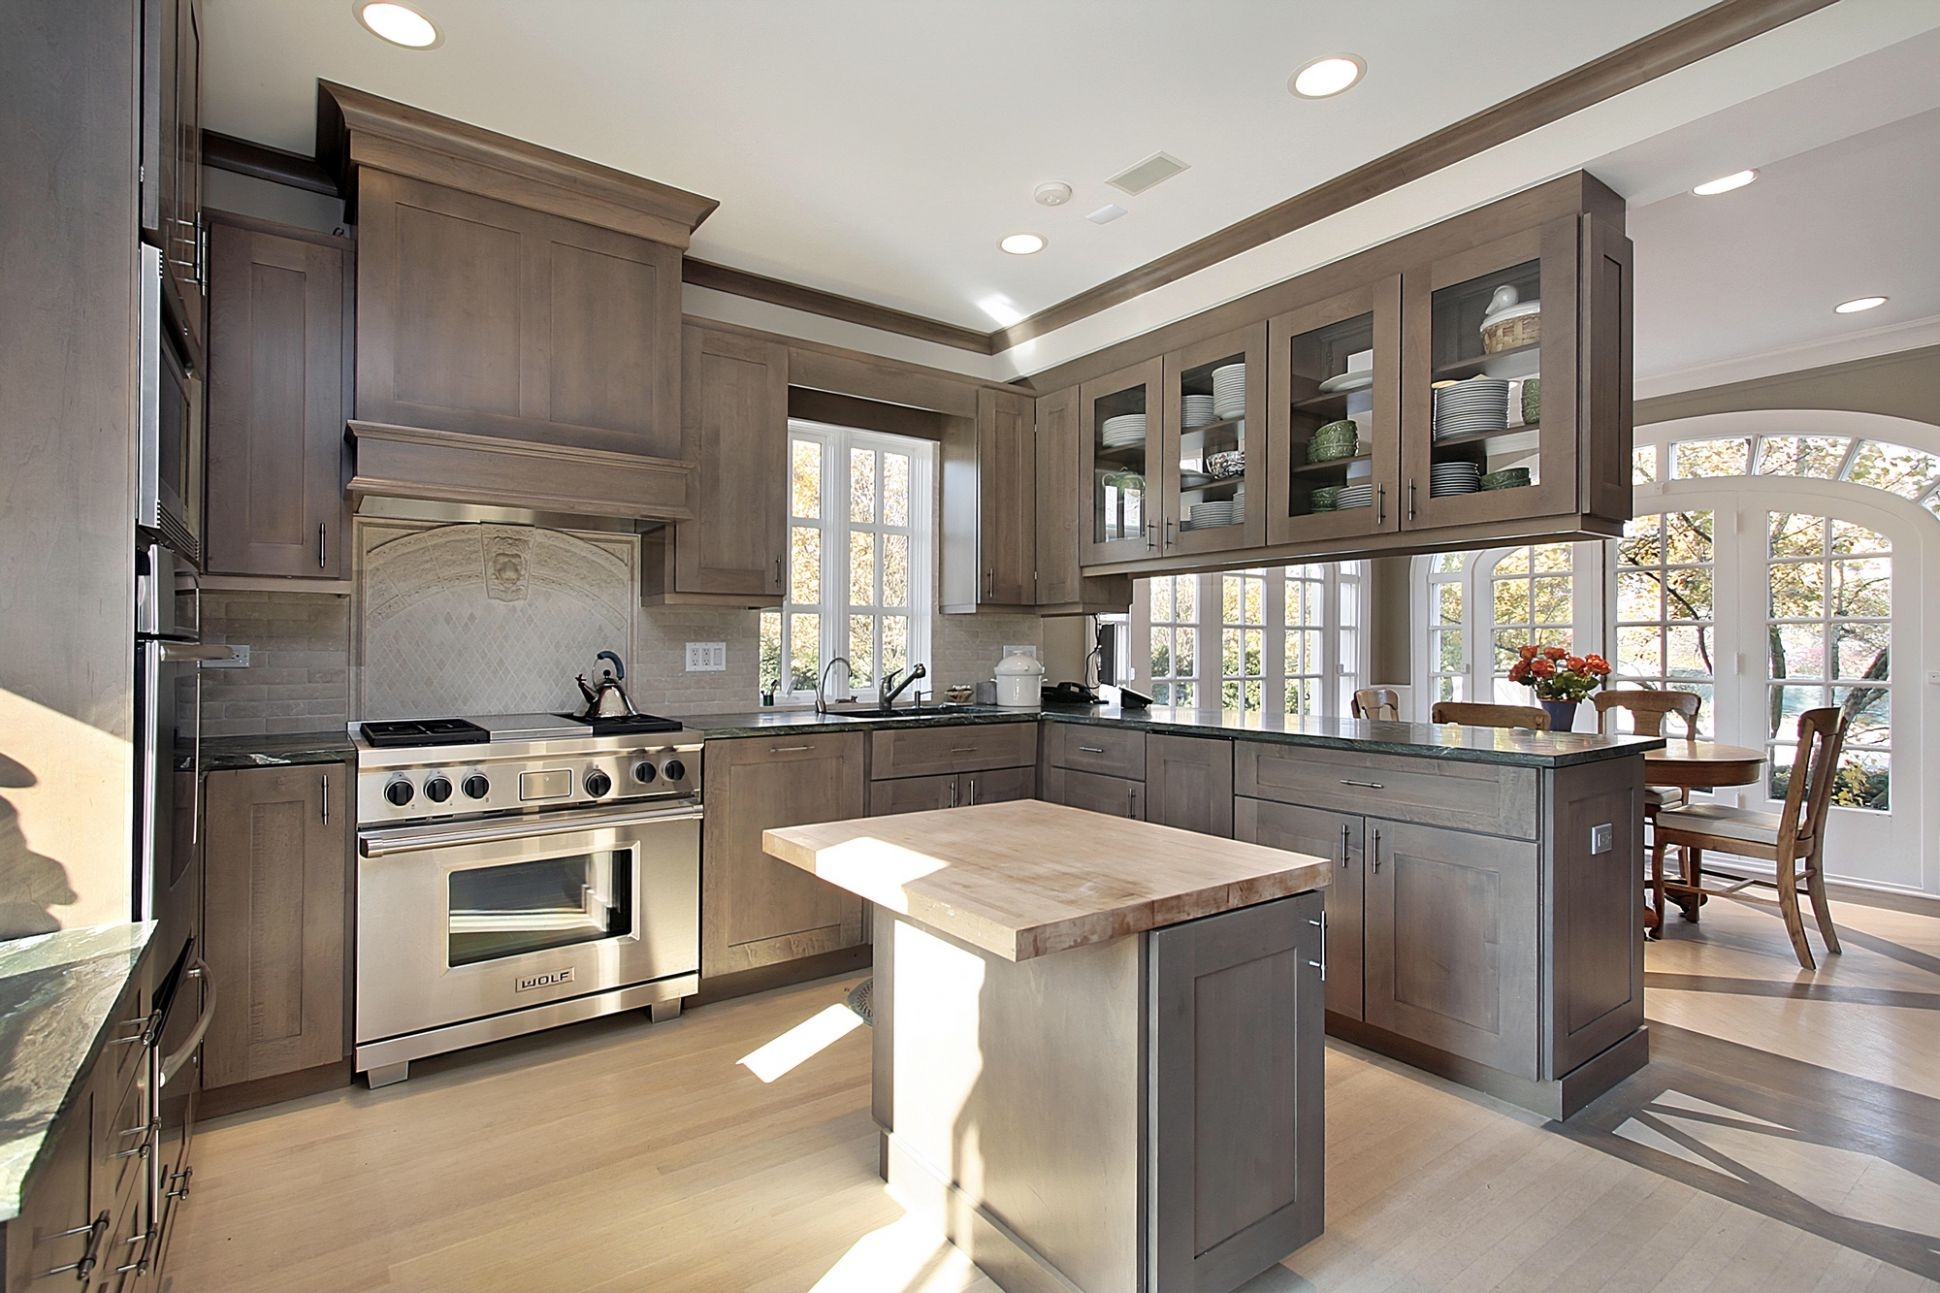 8 Kitchen & Bathroom Upgrade Ideas to Increase Your Resale Value ...